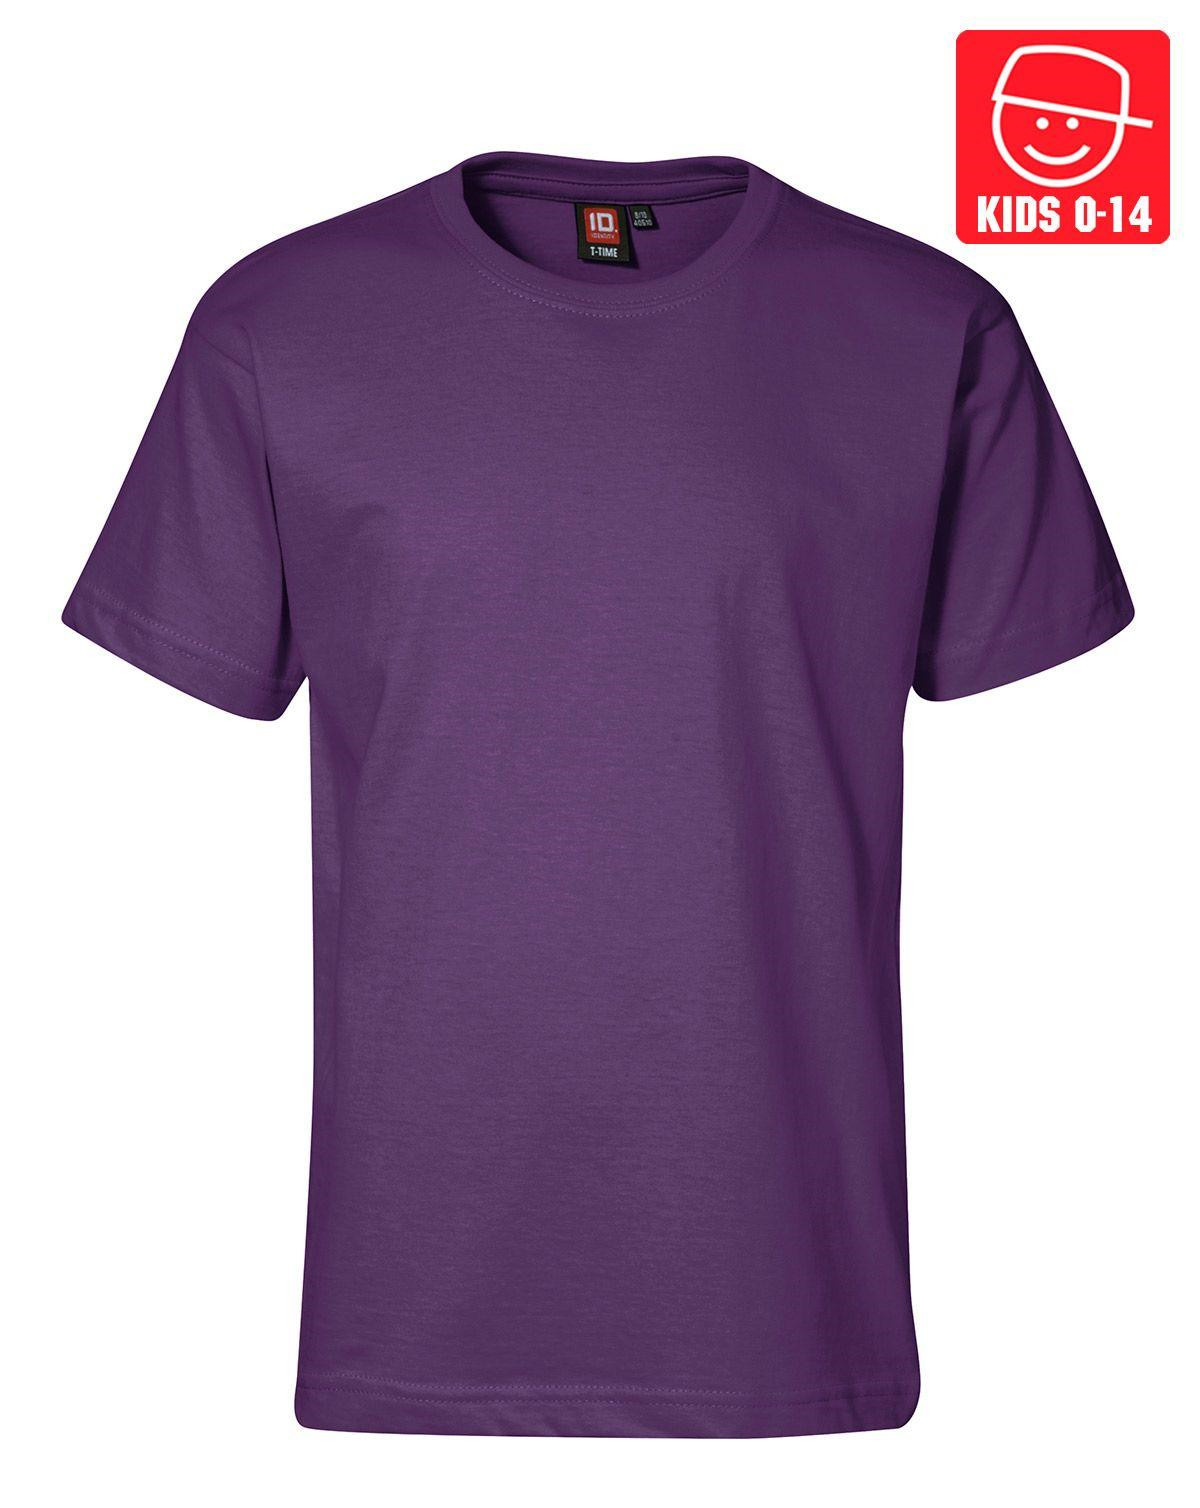 Image of   ID T-TIME T-shirt (Lilla, K122)